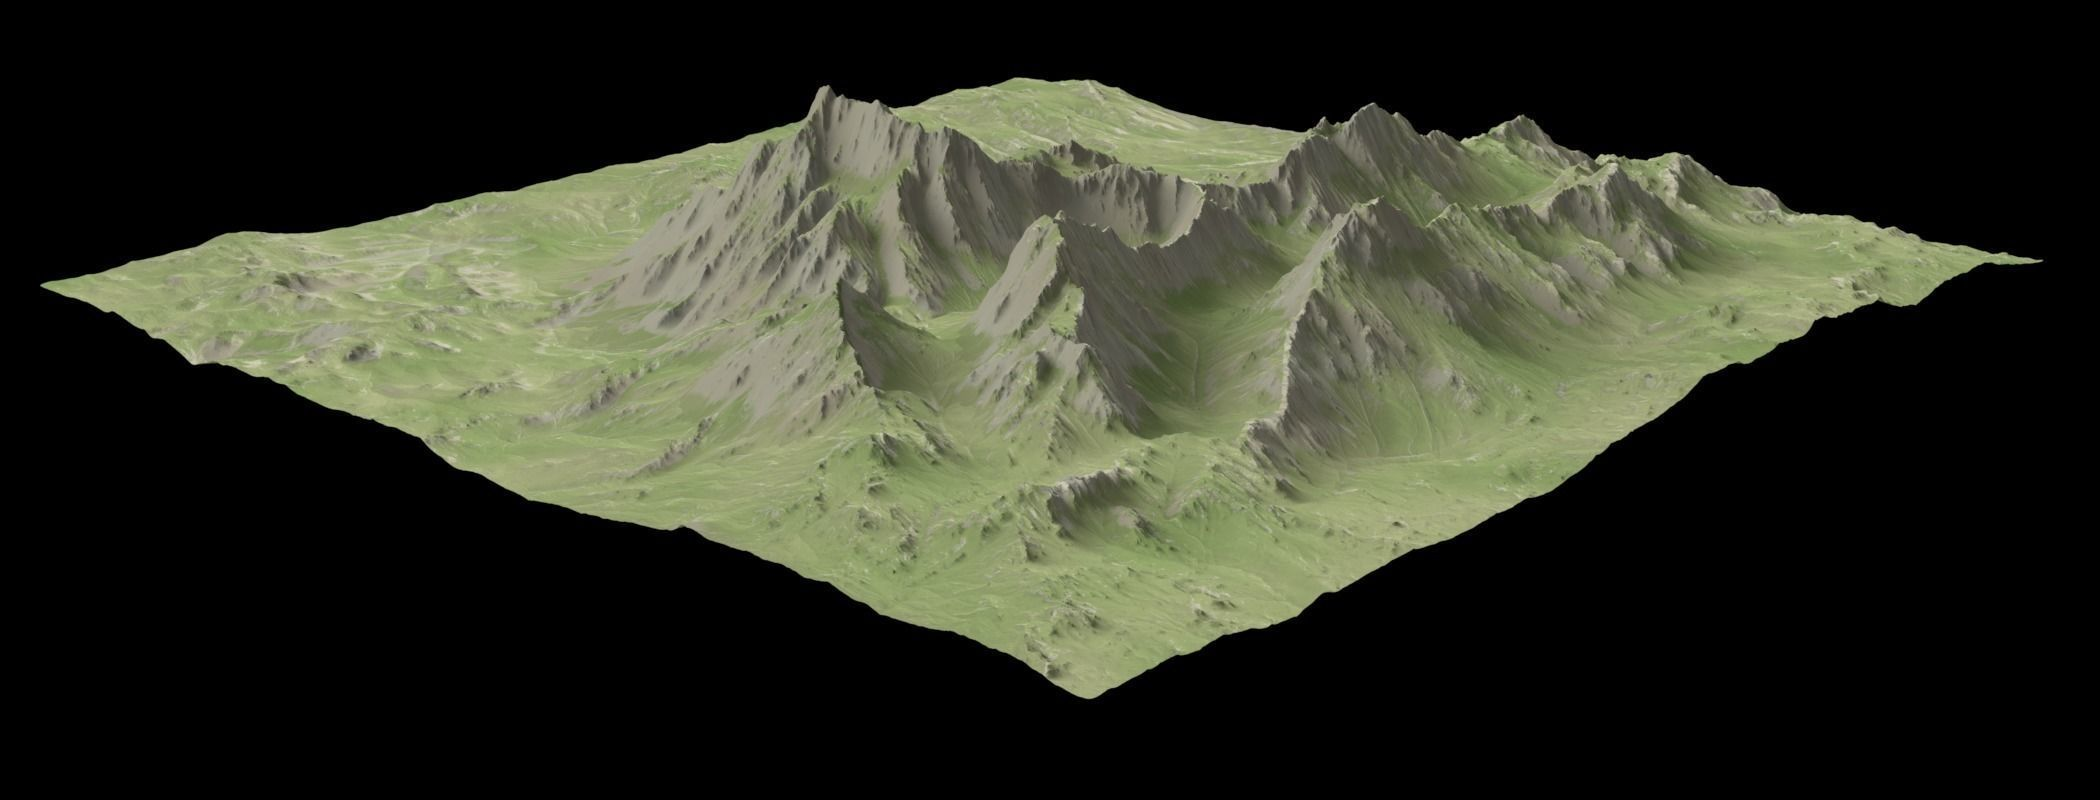 3d model vr ready mountain | cgtrader